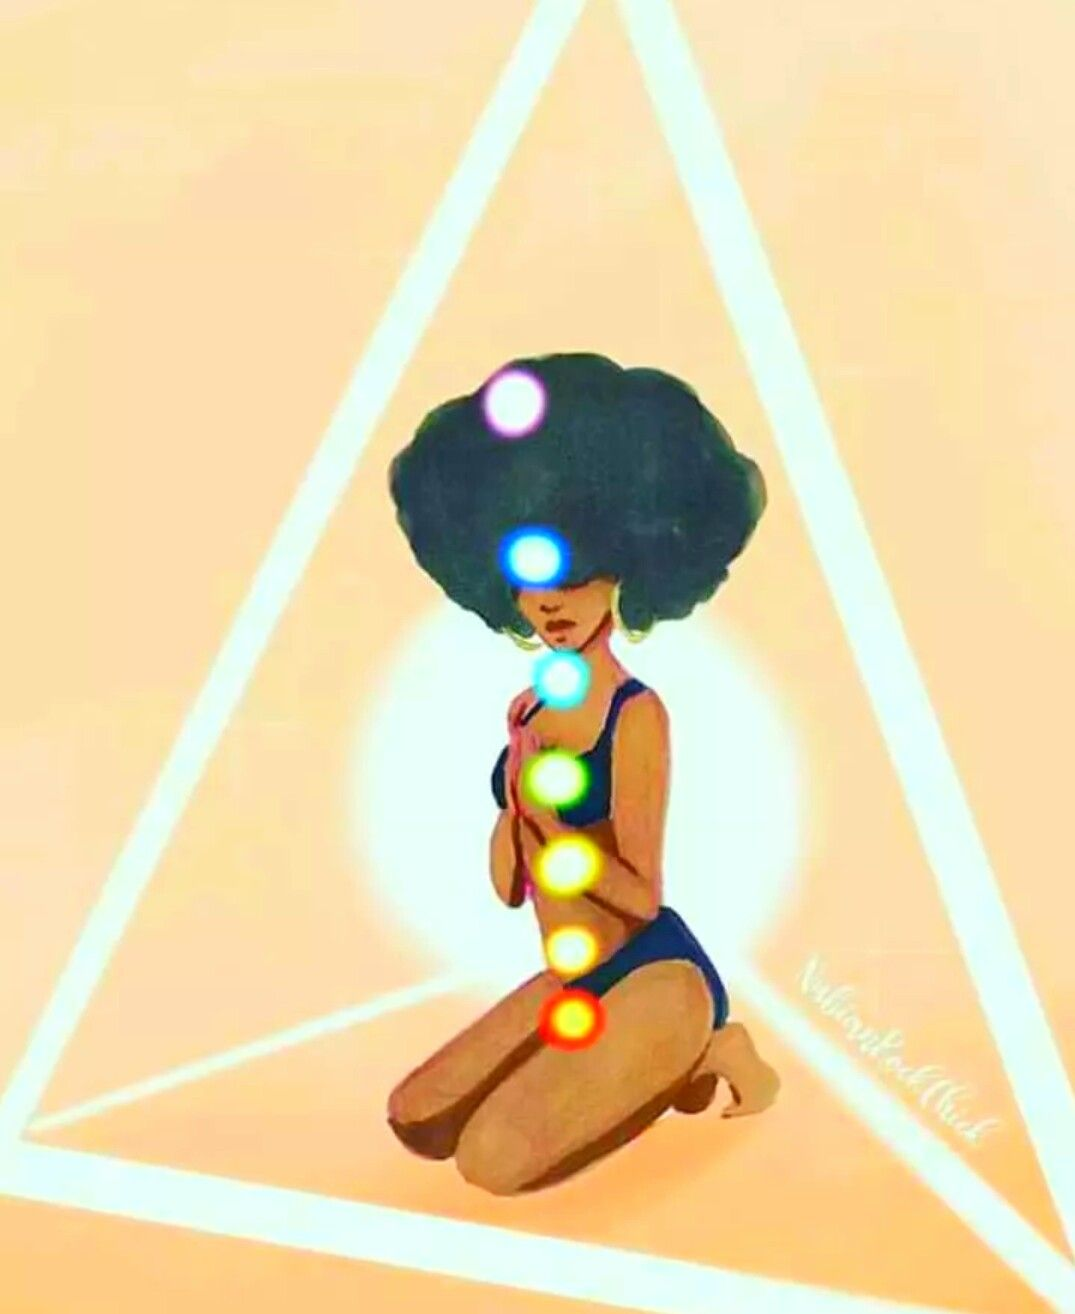 Pin By Unitedblacklibrary On Yuuuuup That S Me Black Girl Art Black Art Afrocentric Art